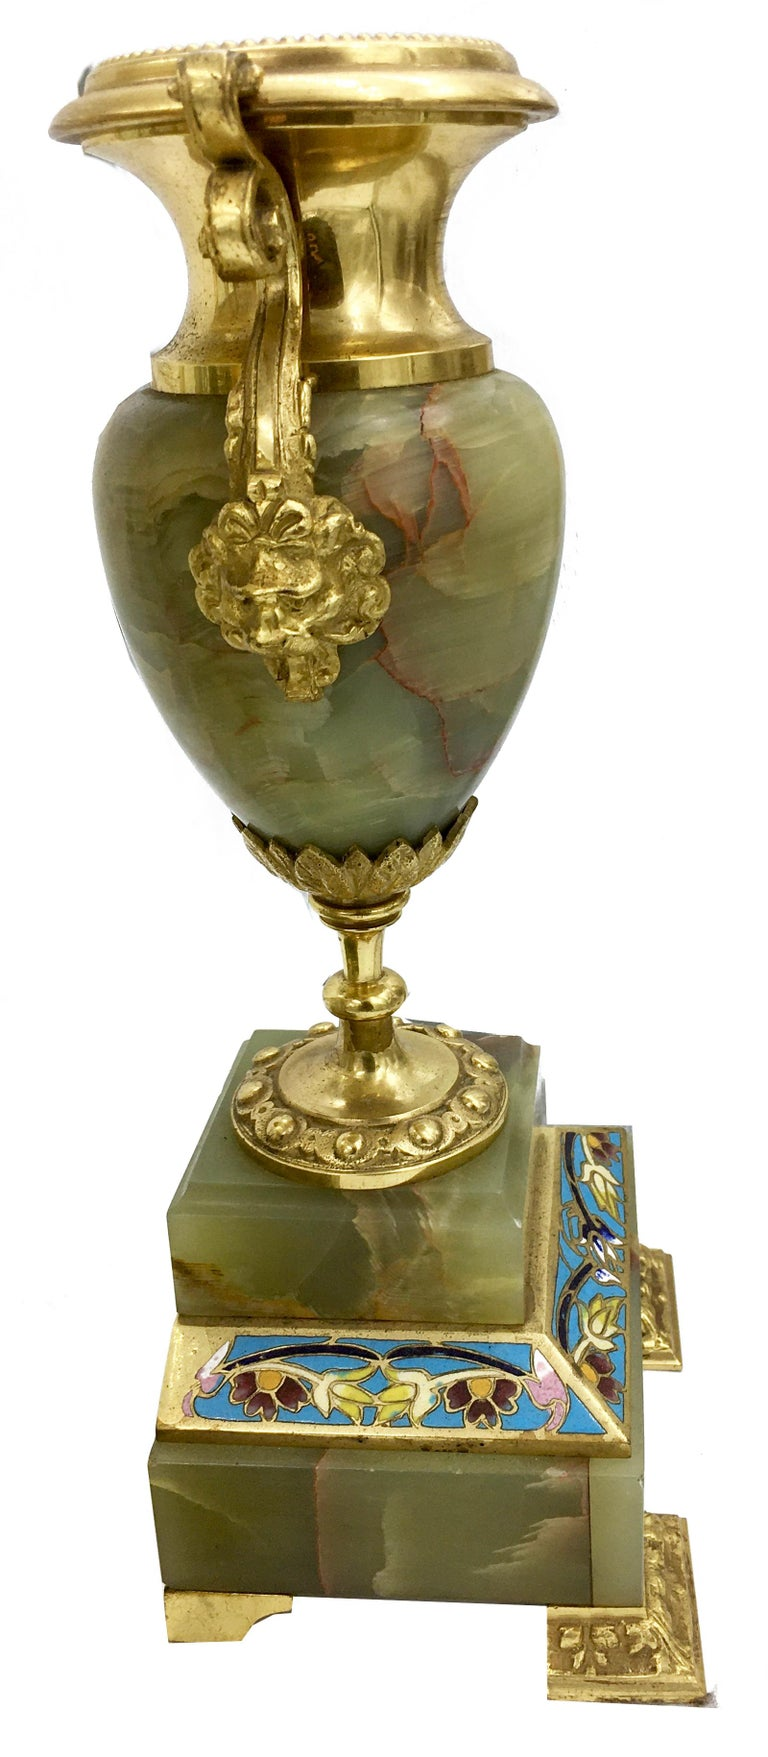 French Louis XVI Style Ormolu, Enamel and Onyx Mantle Clock Set, 19th Century For Sale